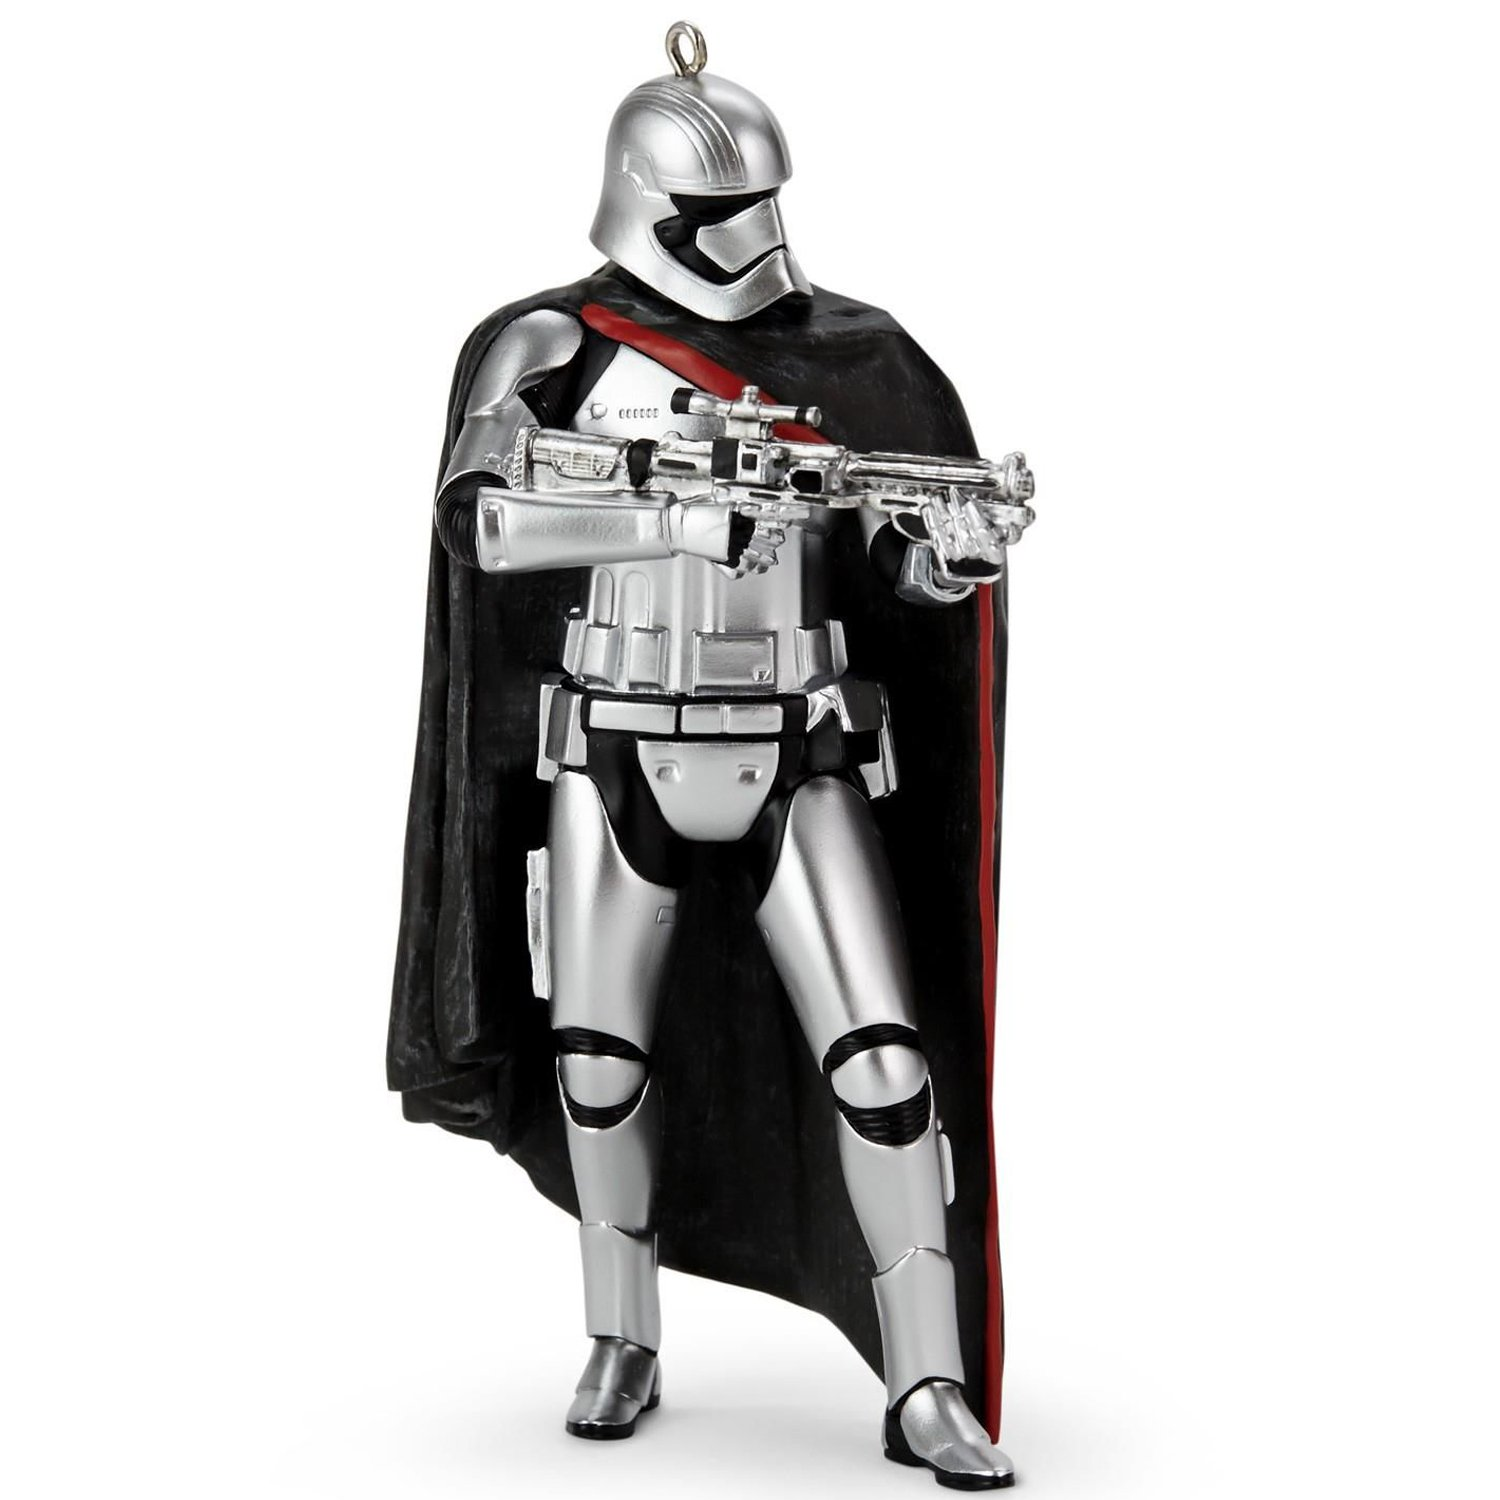 Hallmark Star Wars The Force Awakens Captain Phasma Stormtrooper Tree Ornament